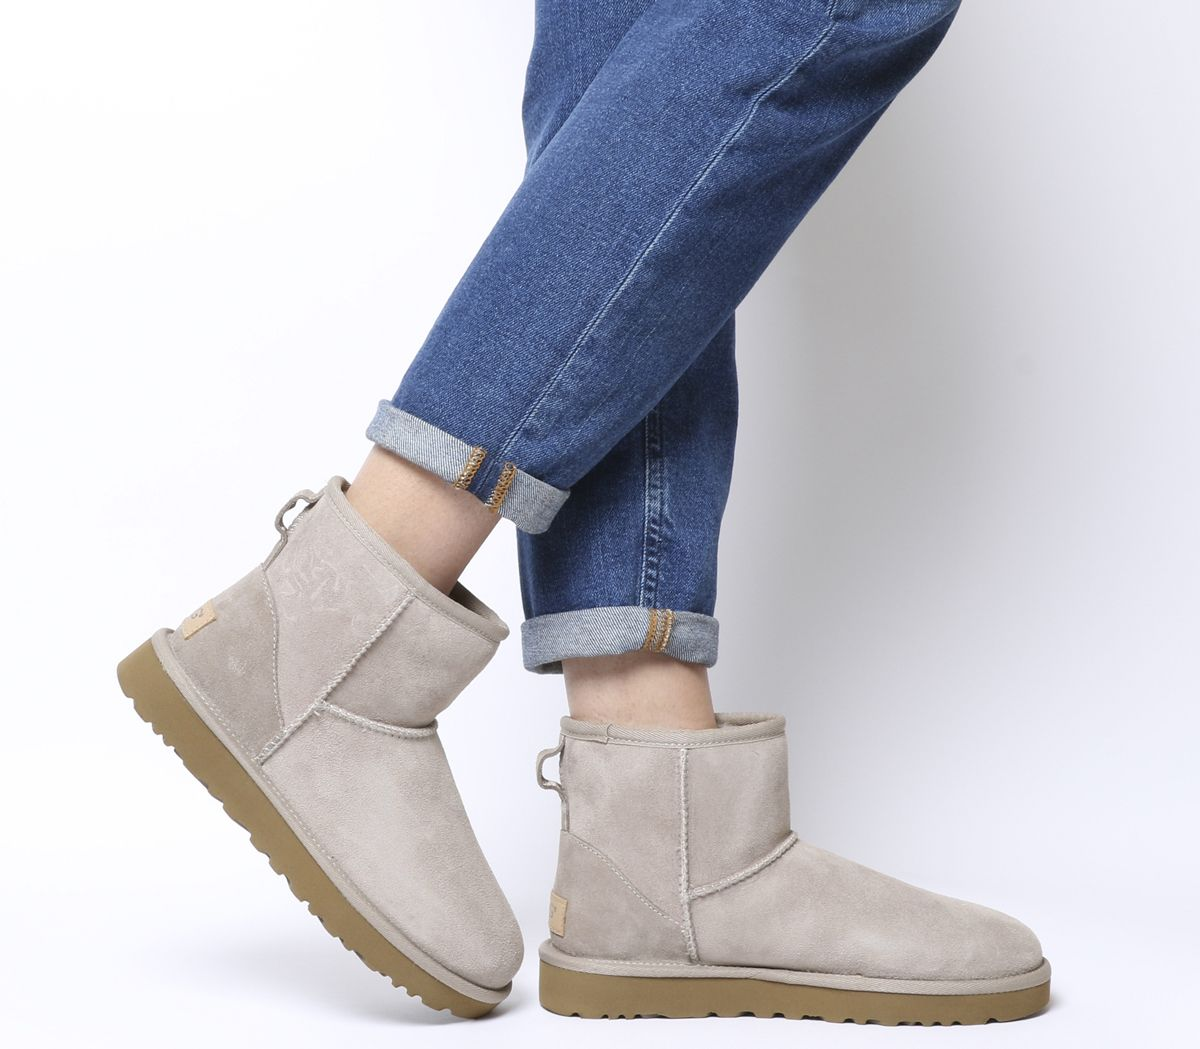 43750e135bc UGG Classic Mini II Boots Oyster - Ankle Boots